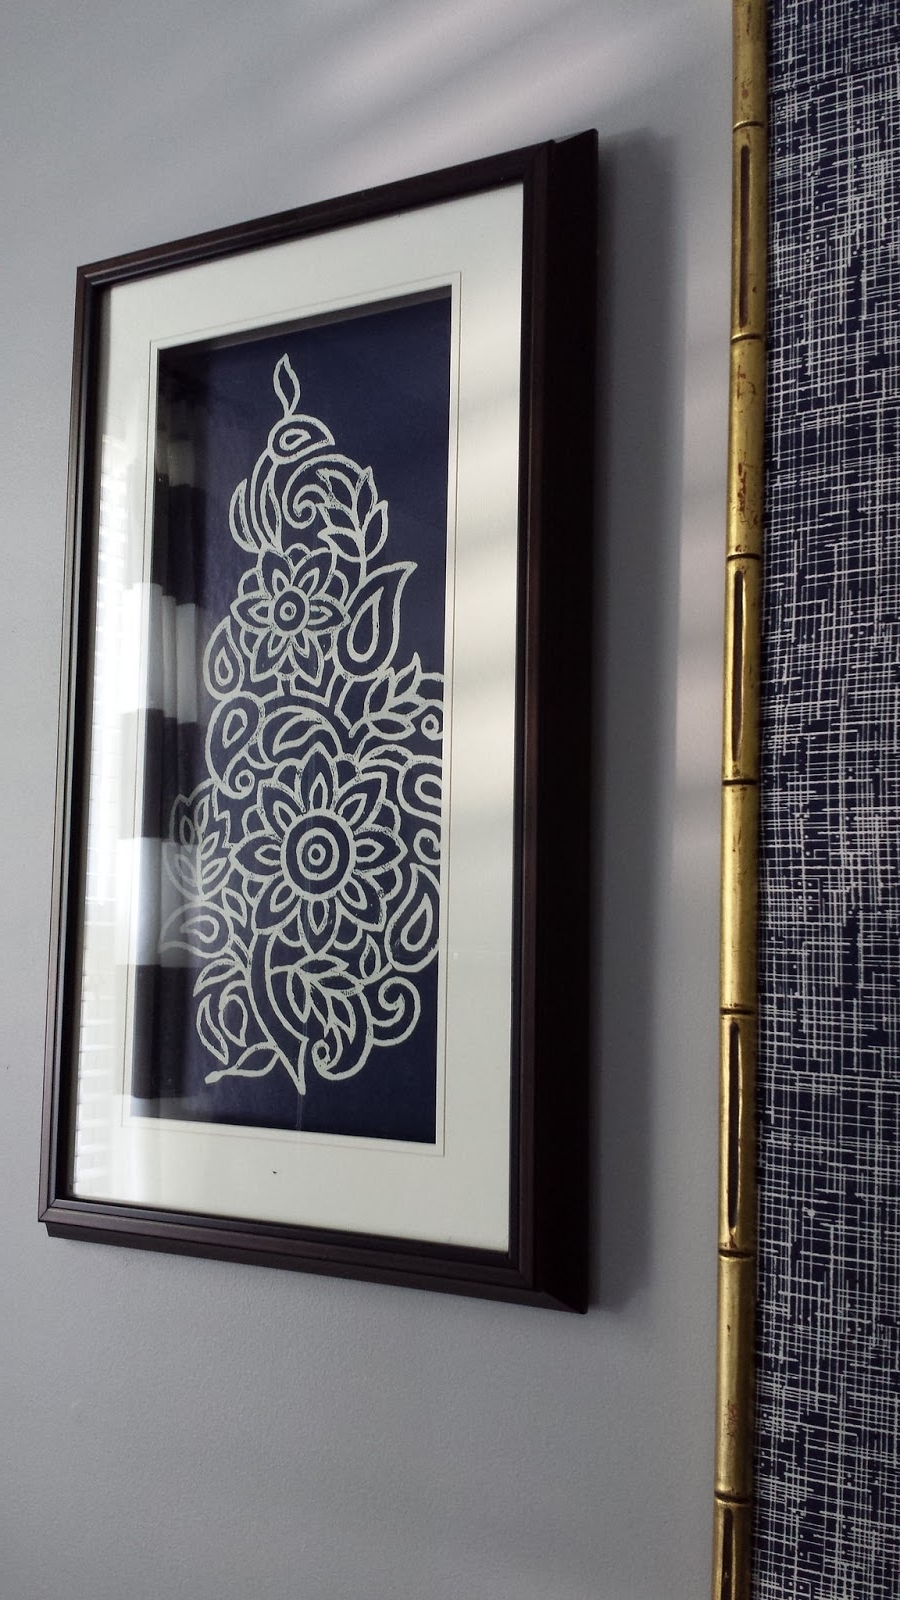 Fabric Wall Art Frames For Most Recently Released Focal Point Styling: Diy Indigo Wall Art With Framed Fabric (View 3 of 15)